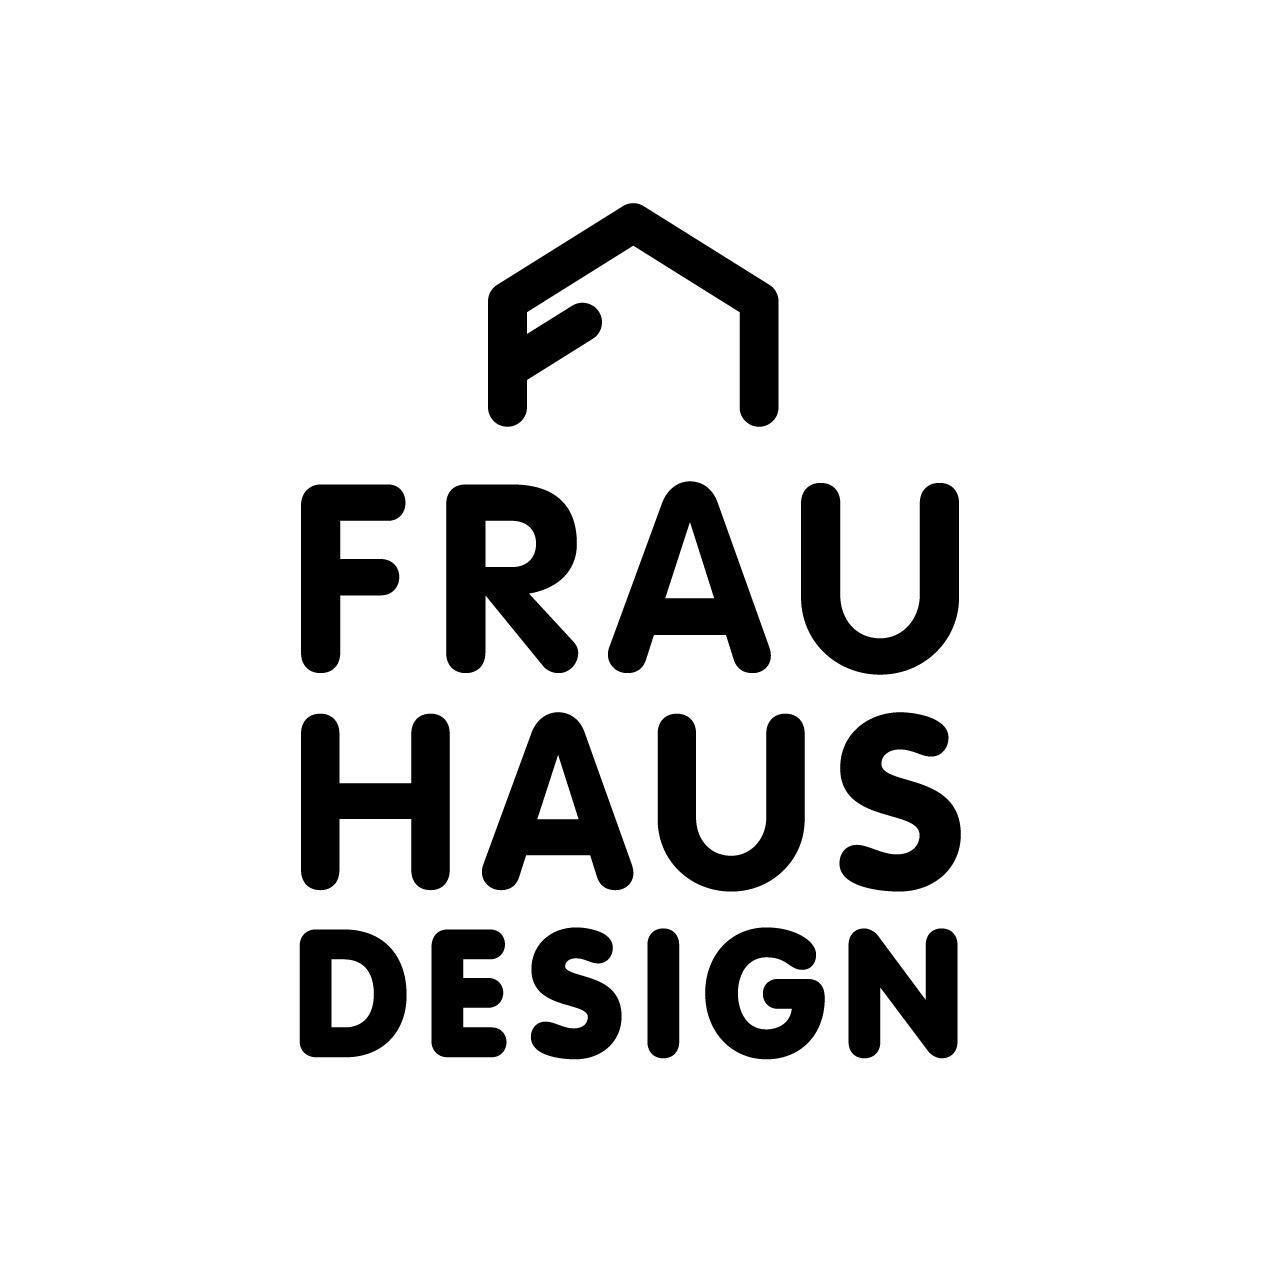 frau haus design. Black Bedroom Furniture Sets. Home Design Ideas